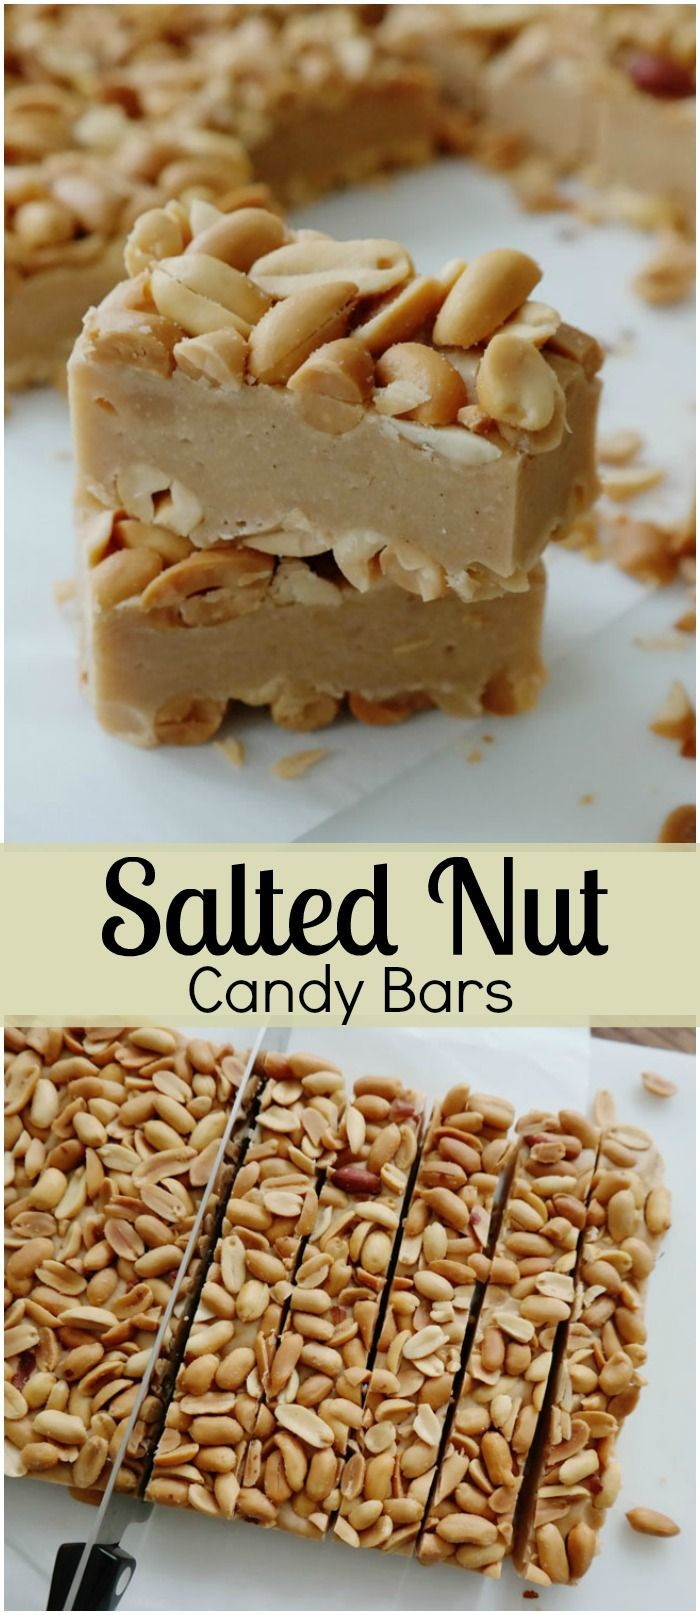 Candy Bar clipart nut Pinterest board posters cards Best